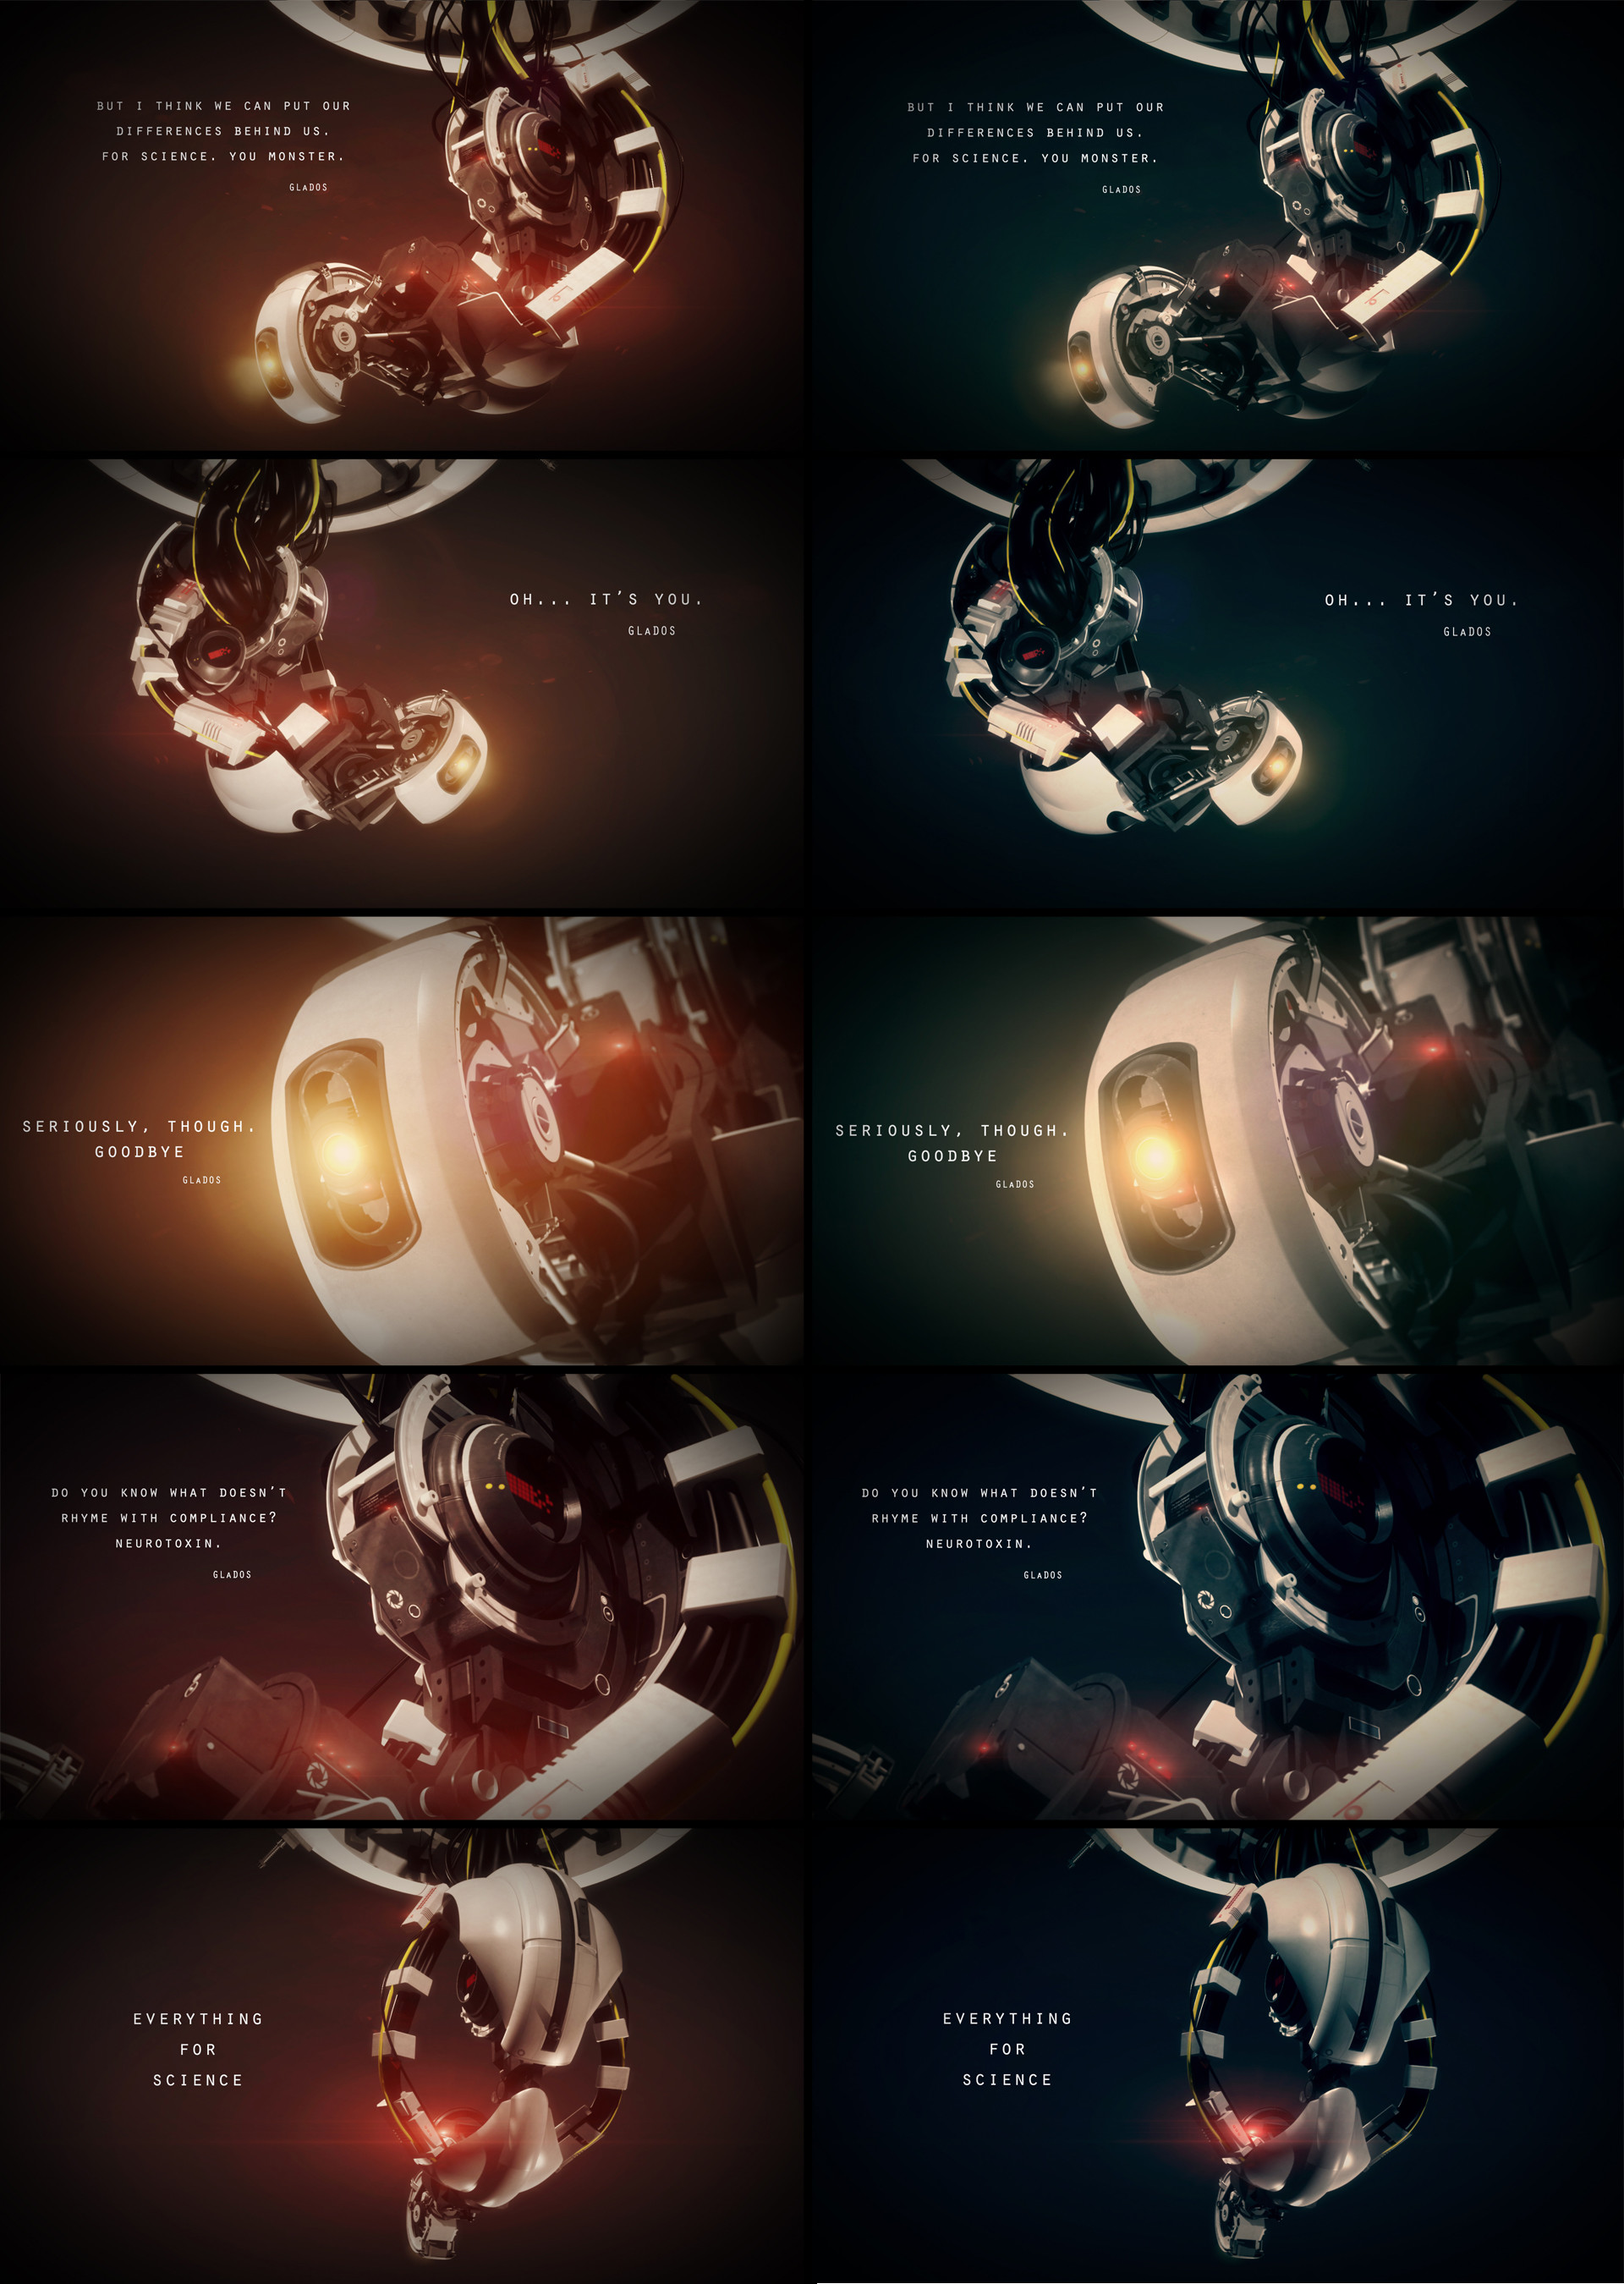 GLaDOS Quotes   GLaDOS – Wallpapers by First9 on deviantART · Portal 2